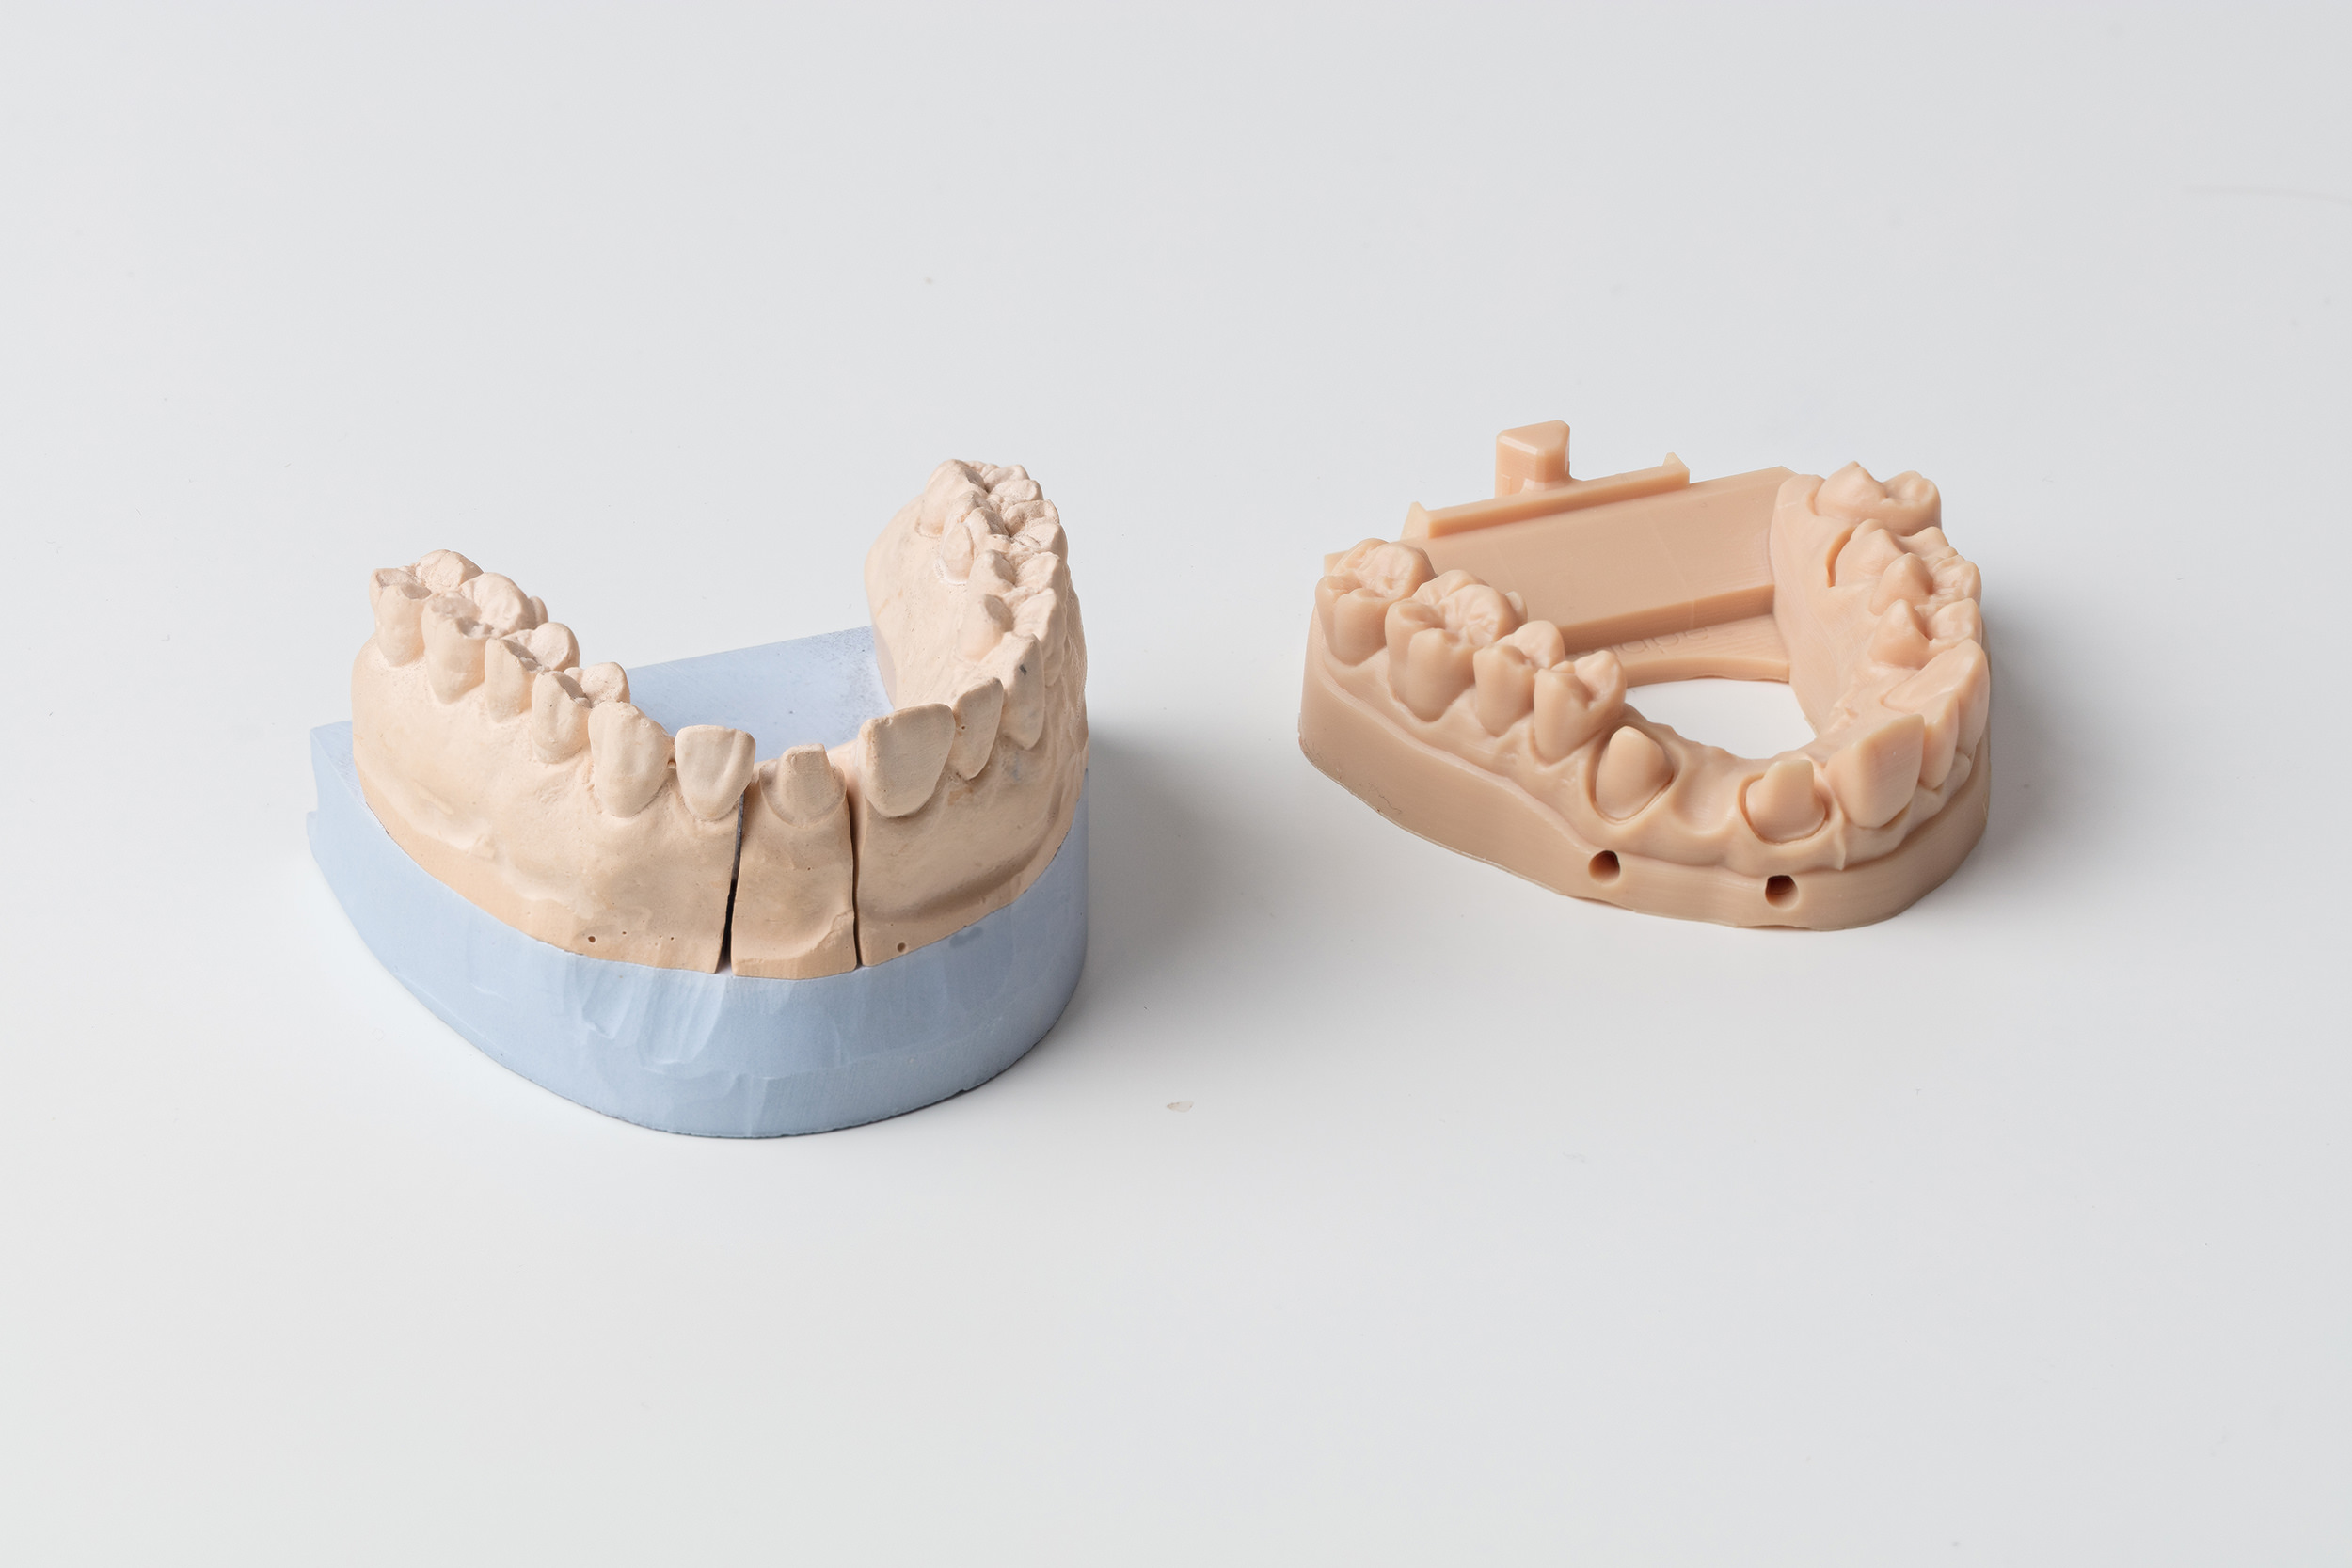 Traditional sectioned gypsum model and a 3D printed crown model with removable dyes made from Formlabs' Dental Model Resin.